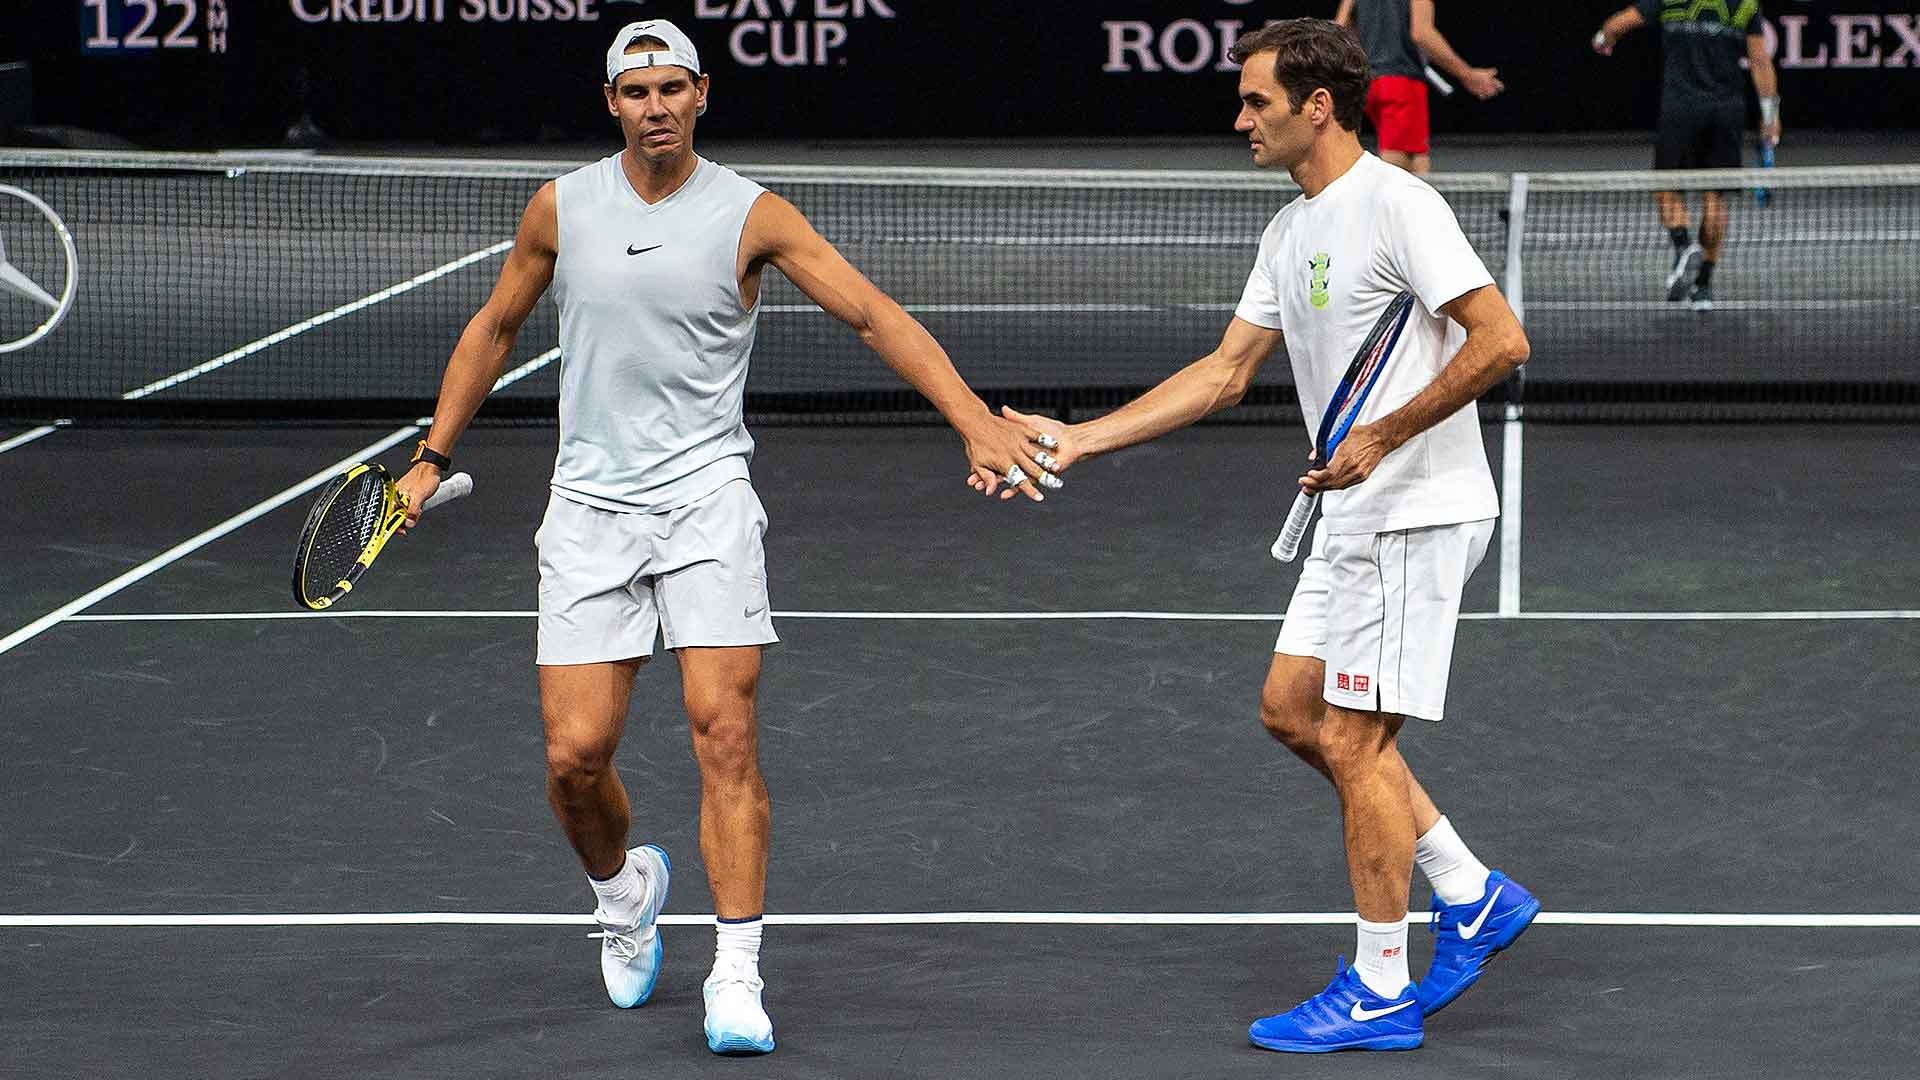 <a href='https://www.atptour.com/en/players/rafael-nadal/n409/overview'>Rafael Nadal</a> and <a href='https://www.atptour.com/en/players/roger-federer/f324/overview'>Roger Federer</a> practise ahead of the 2019 <a href='https://www.atptour.com/en/tournaments/laver-cup/9210/overview'>Laver Cup</a> in Geneva.